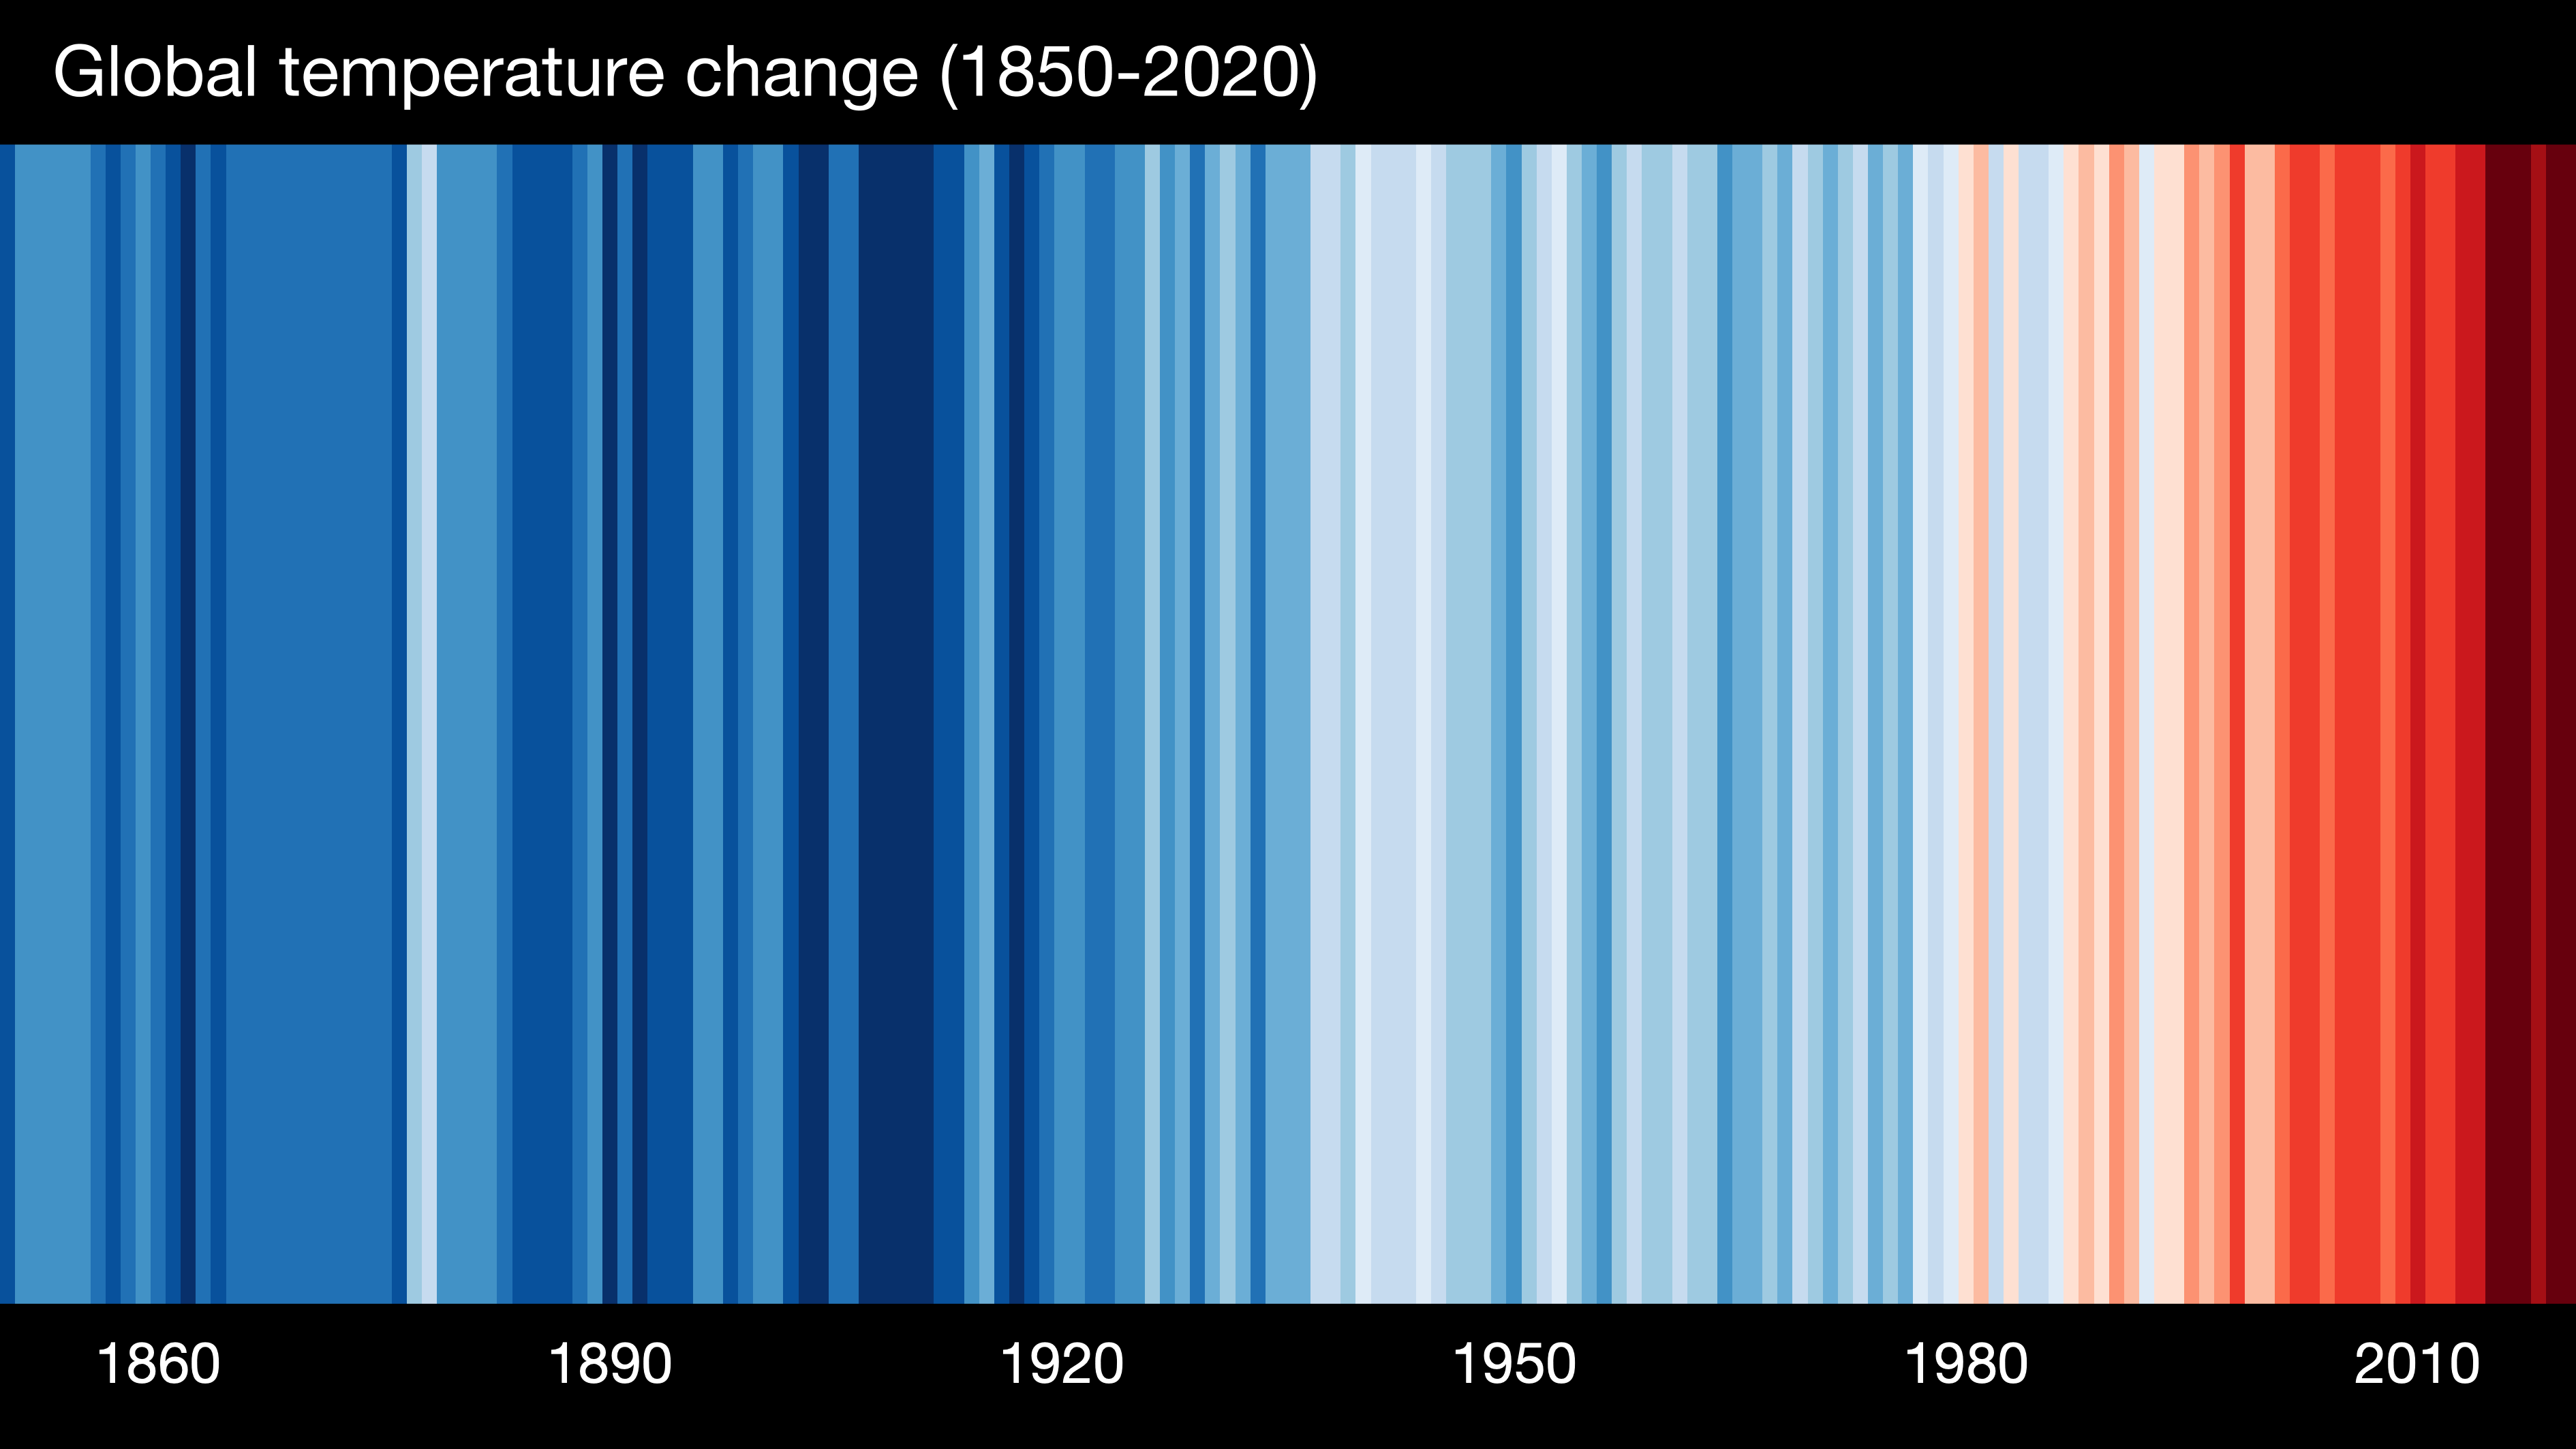 Vertical stripes of colour denoting the changing global temperature starting with blues and fading to dark reds